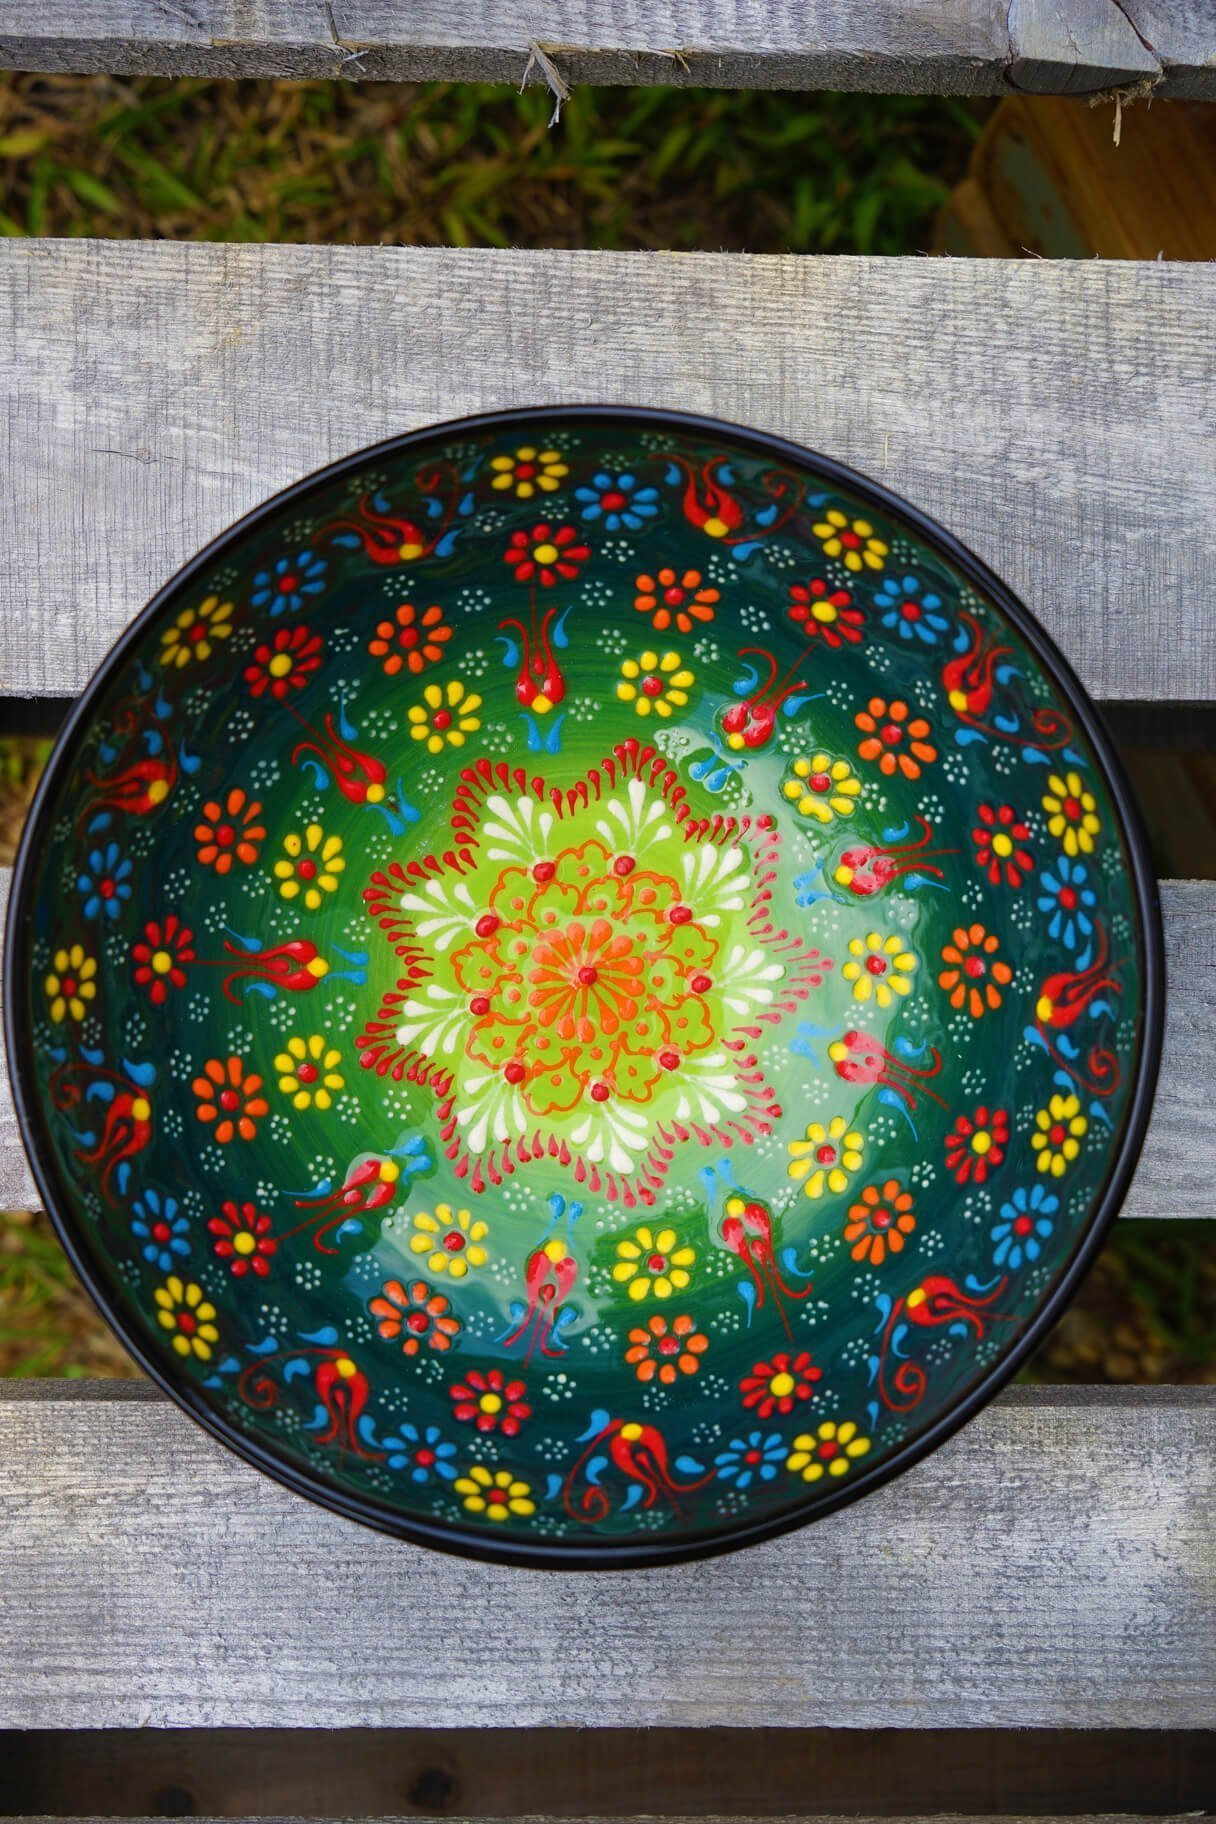 Bowl With Green Olives Painted On It